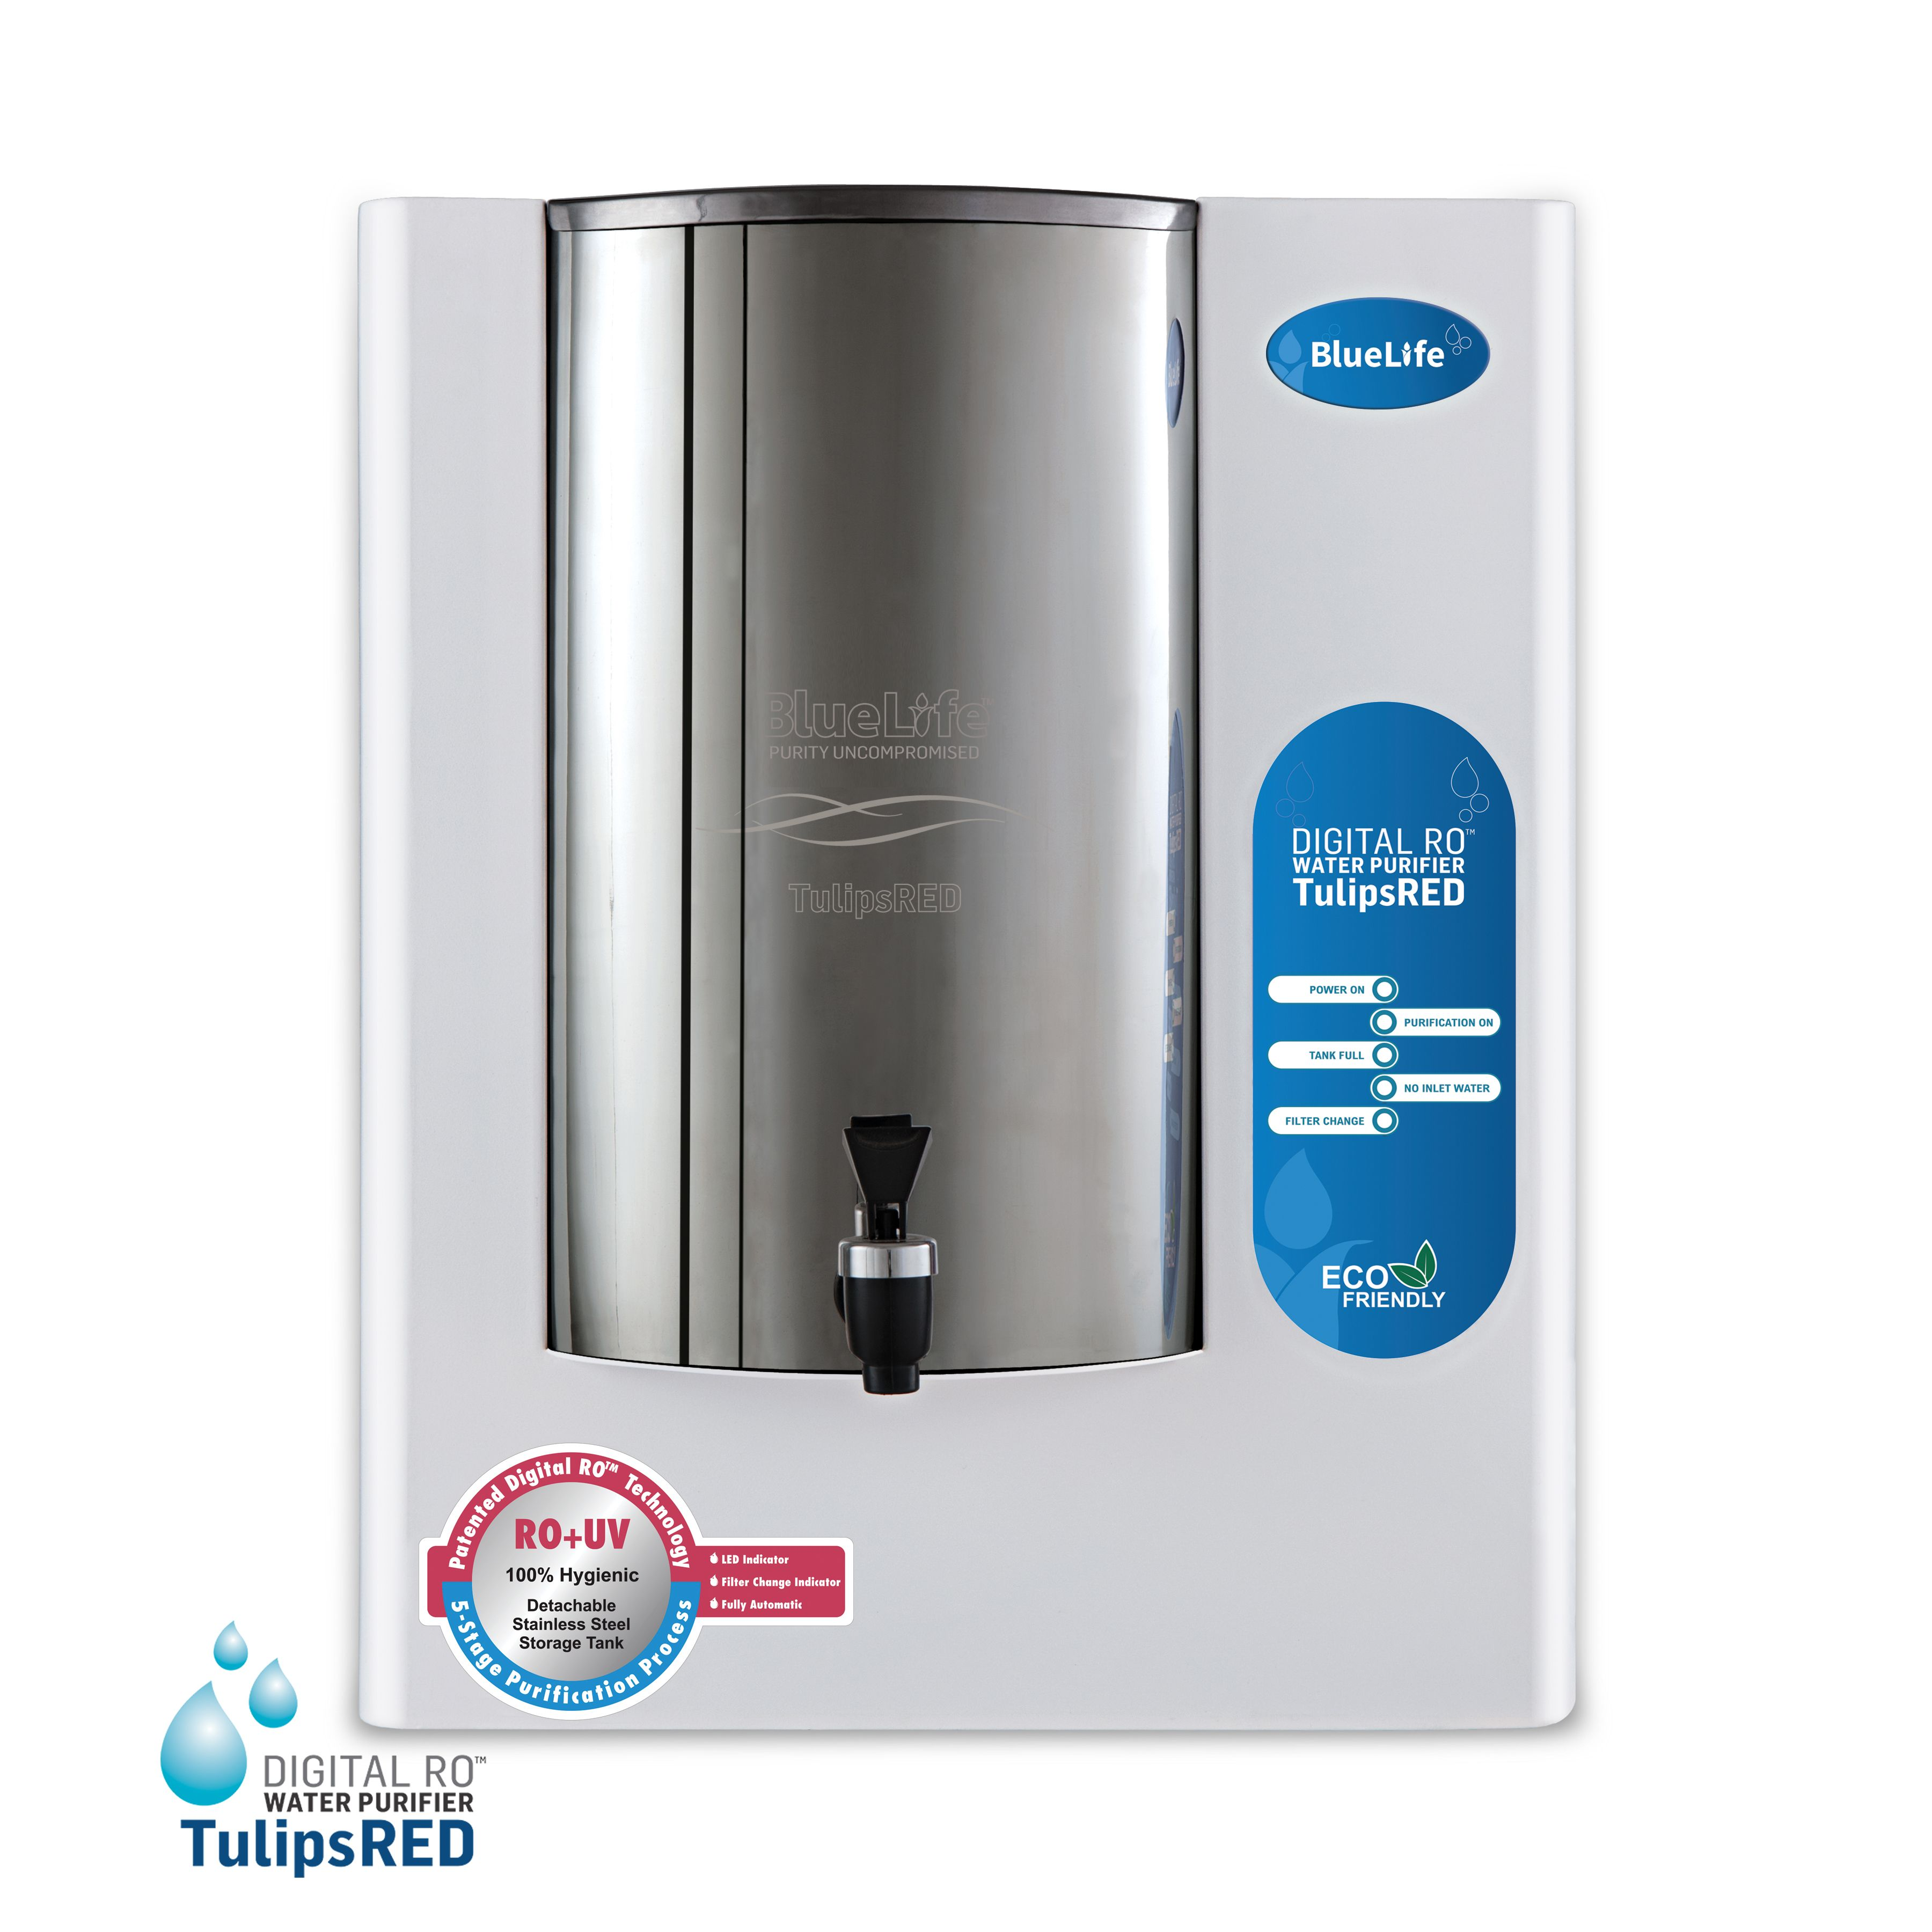 BlueLife TulipsRED, Digital RO+UV Water Purifier with Detachable ...